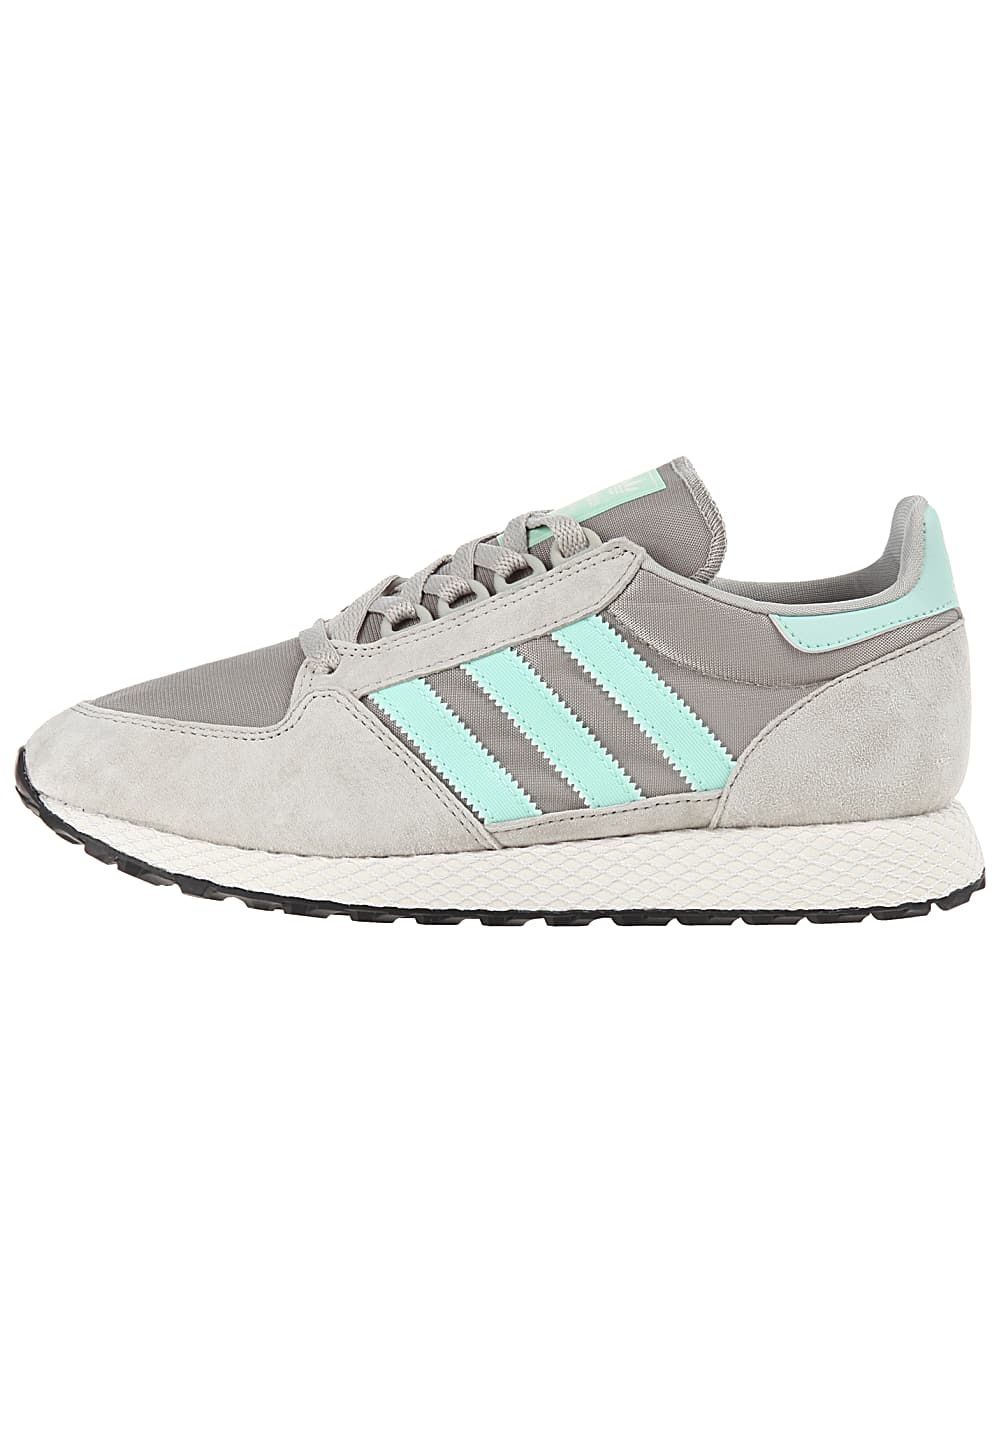 adidas Originals Forest Grove Sneaker für Damen Grau